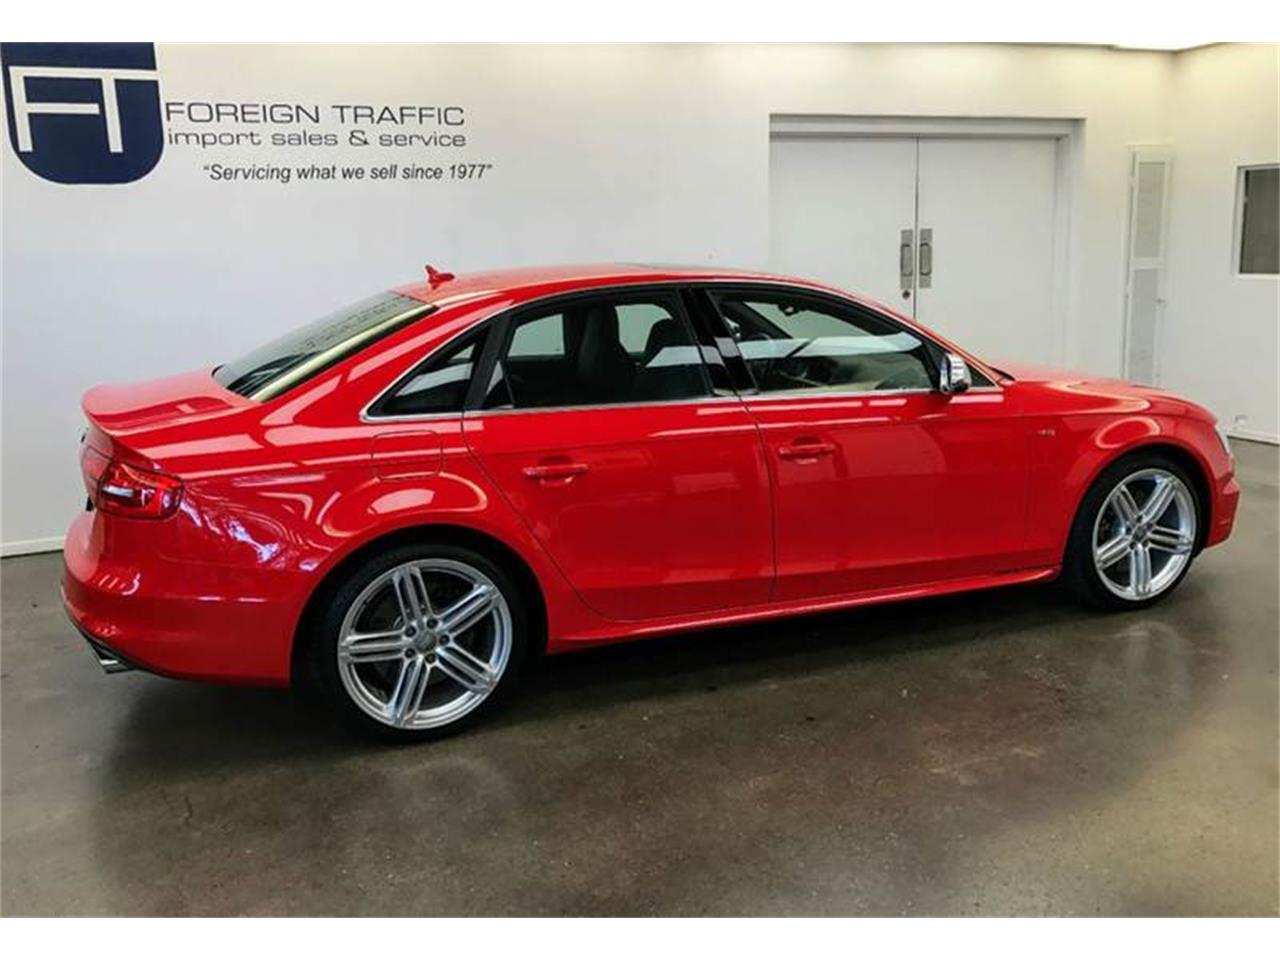 Large Picture of 2016 S4 - $42,950.00 Offered by Foreign Traffic Import Sales & Service - LHL3